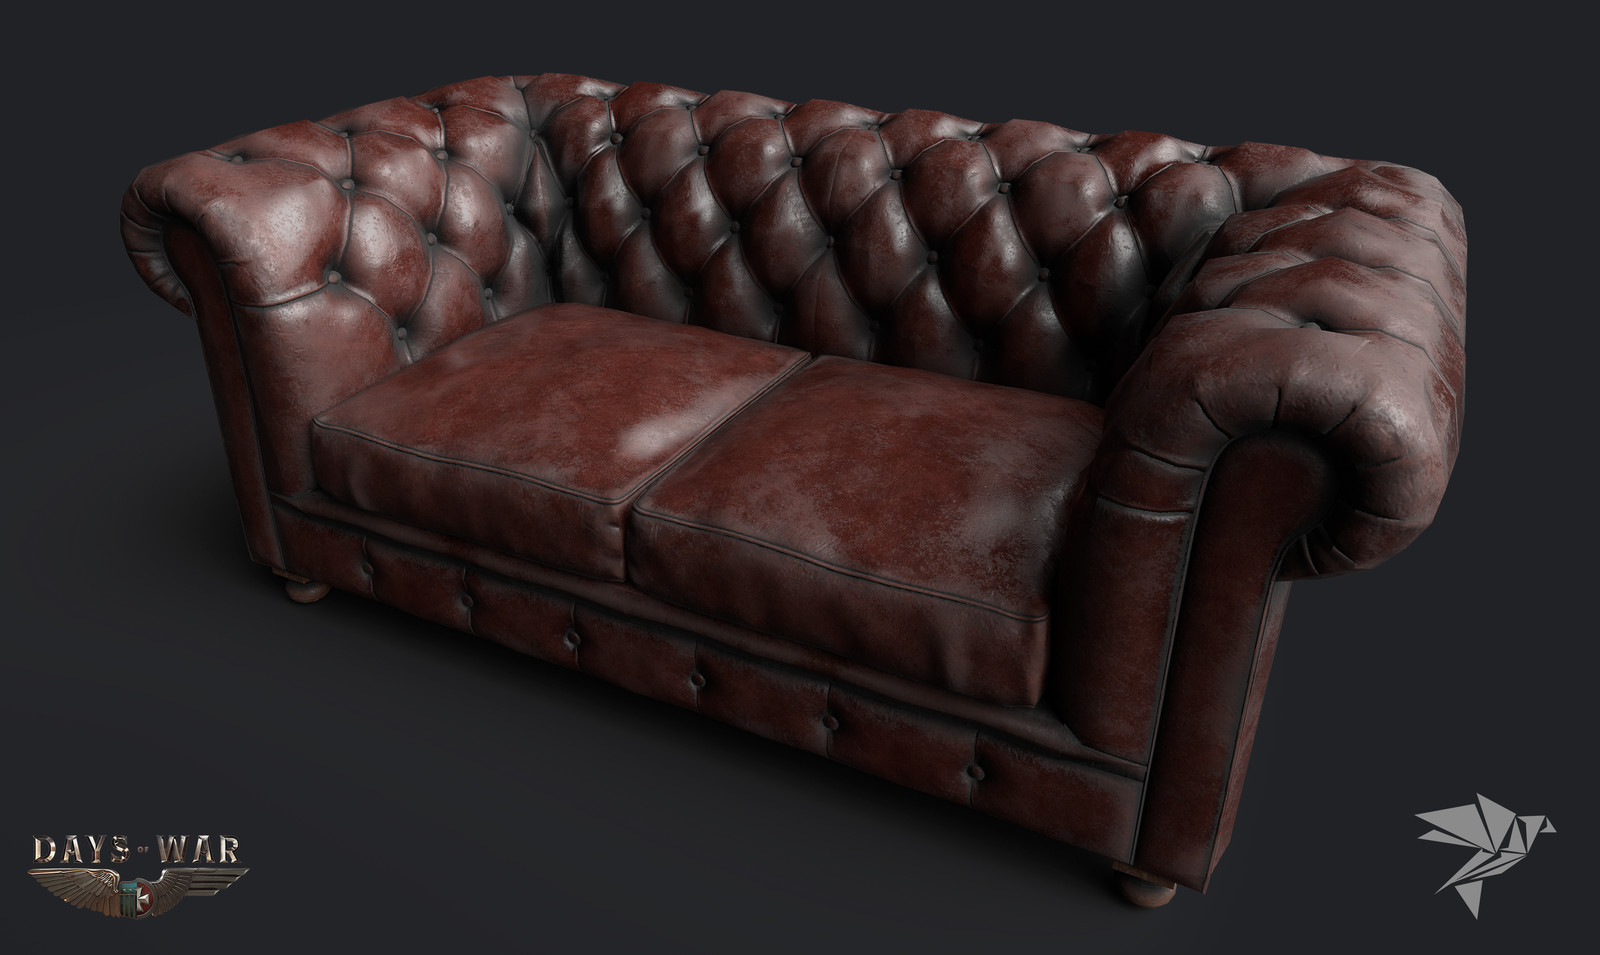 Days of War - Furniture Sofas